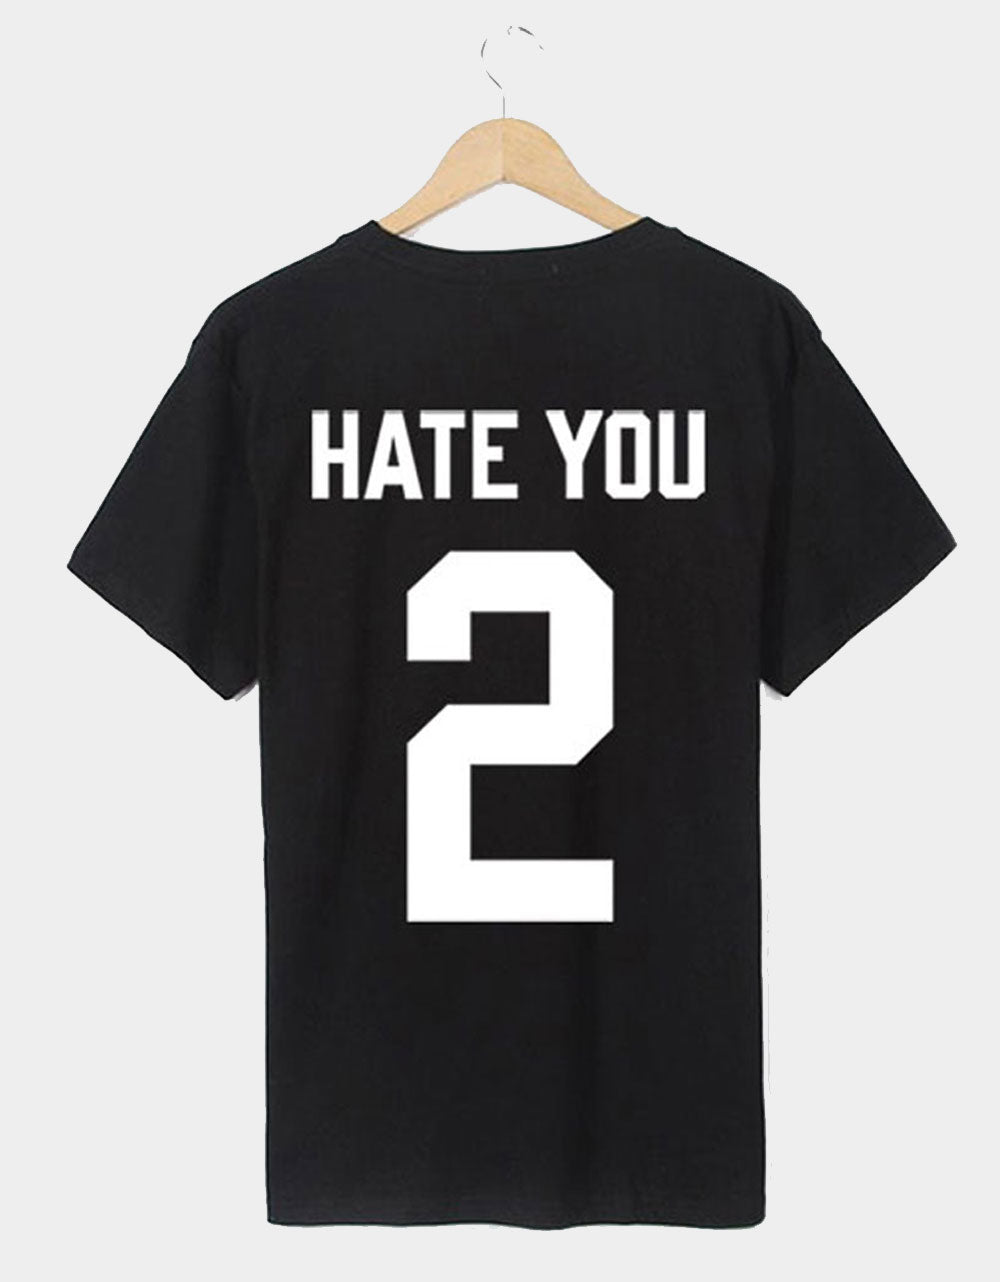 T-shirt Hate you too